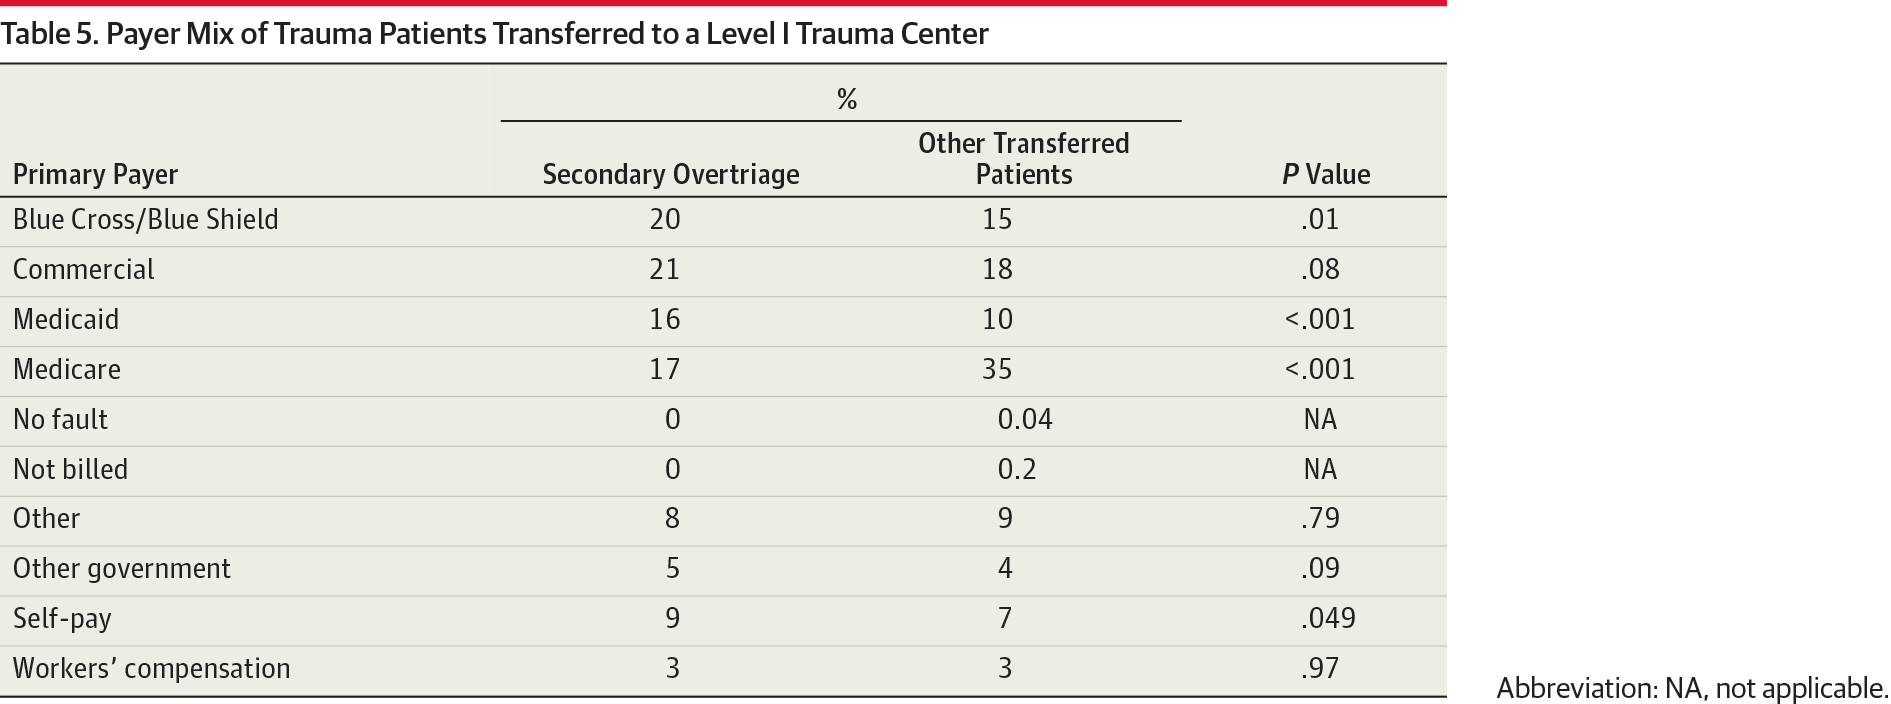 Secondary Overtriage: The Burden of Unnecessary